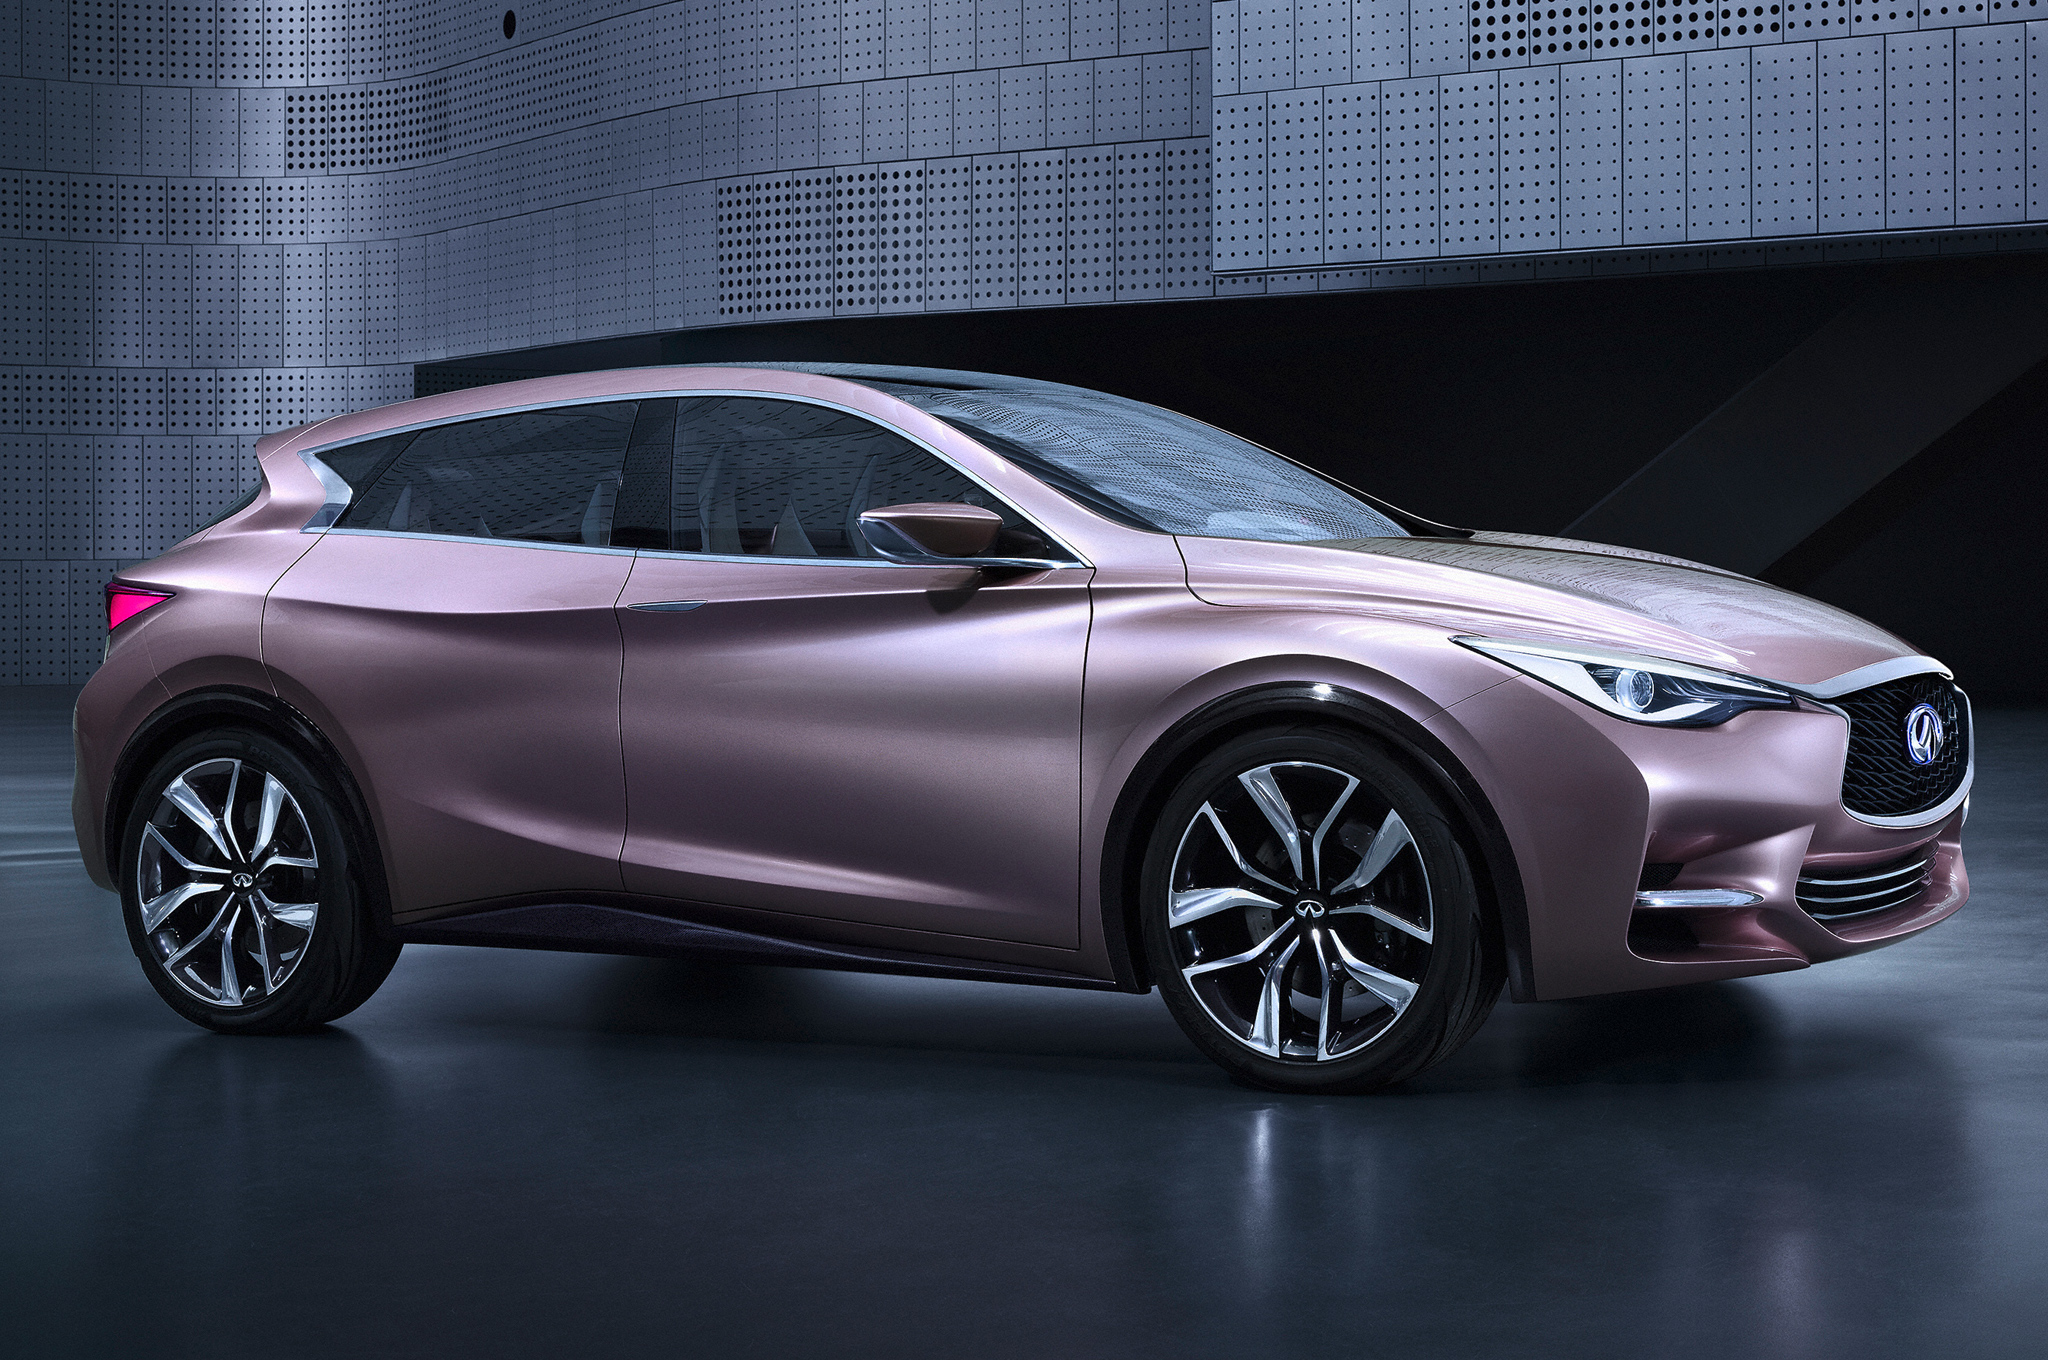 First Infiniti Q30 Concept Image Revealed